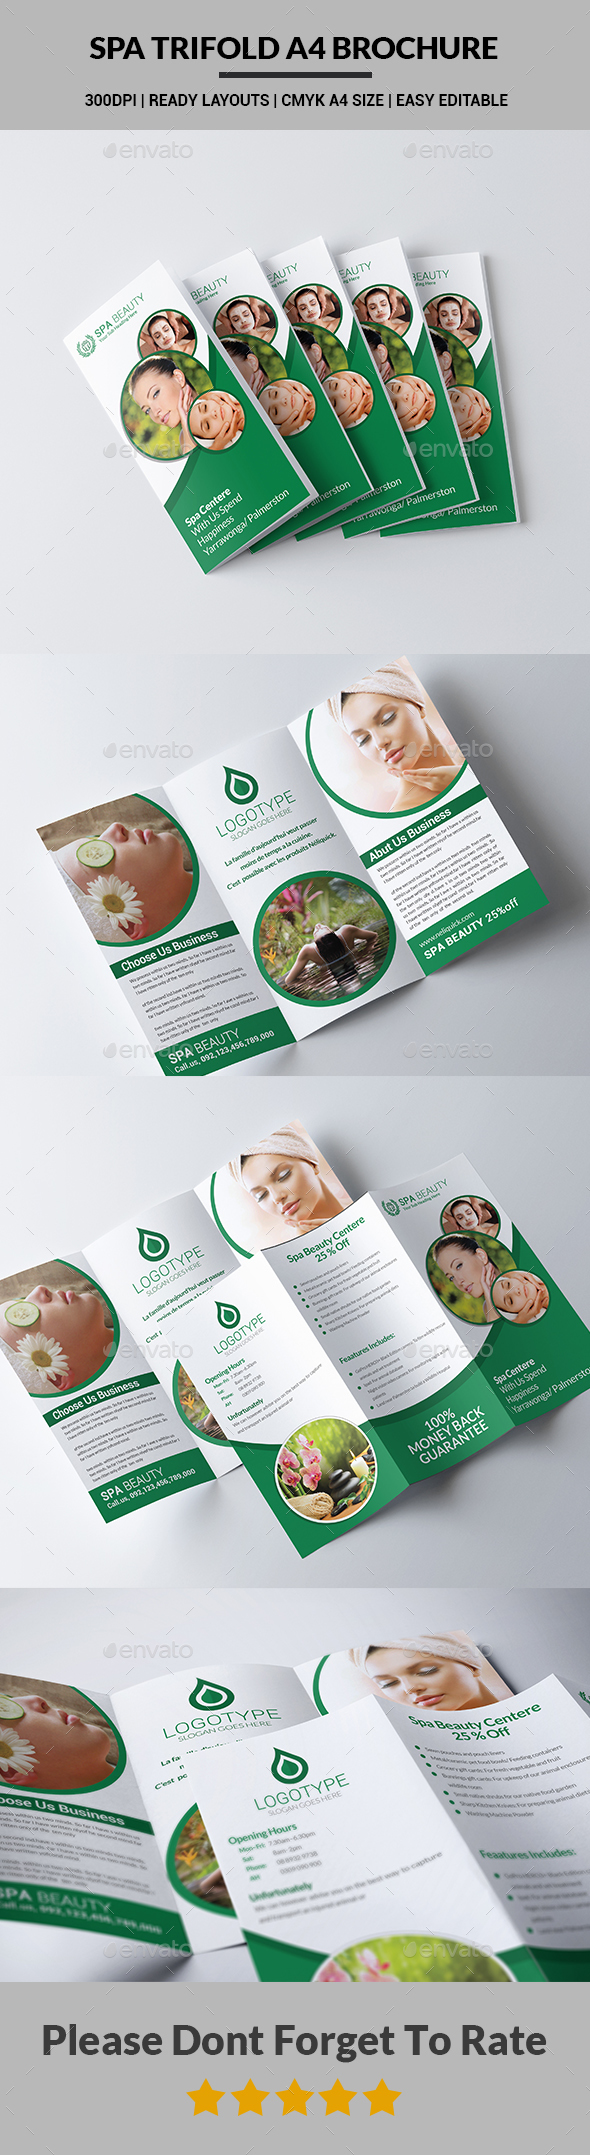 Spa Trifold A4 Brochure - Brochures Print Templates